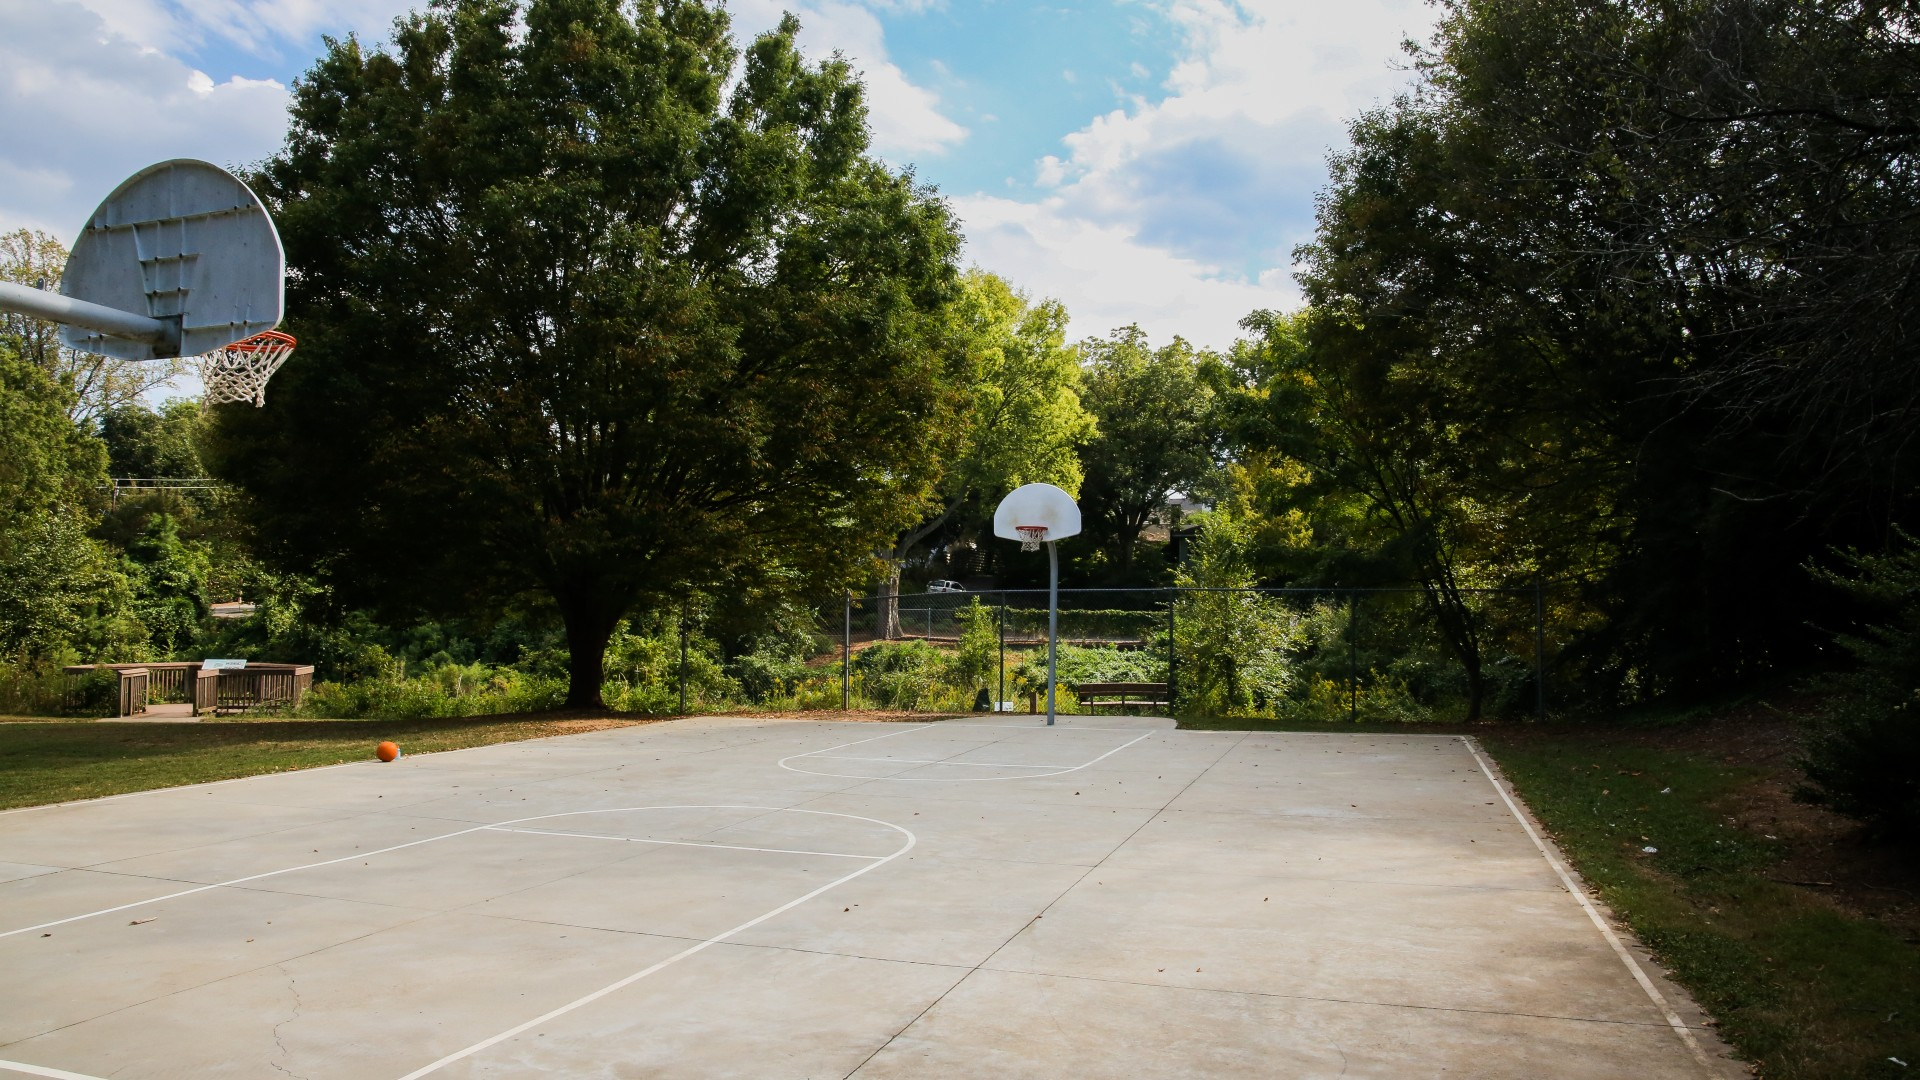 A concrete outdoor basketball court with two hoops